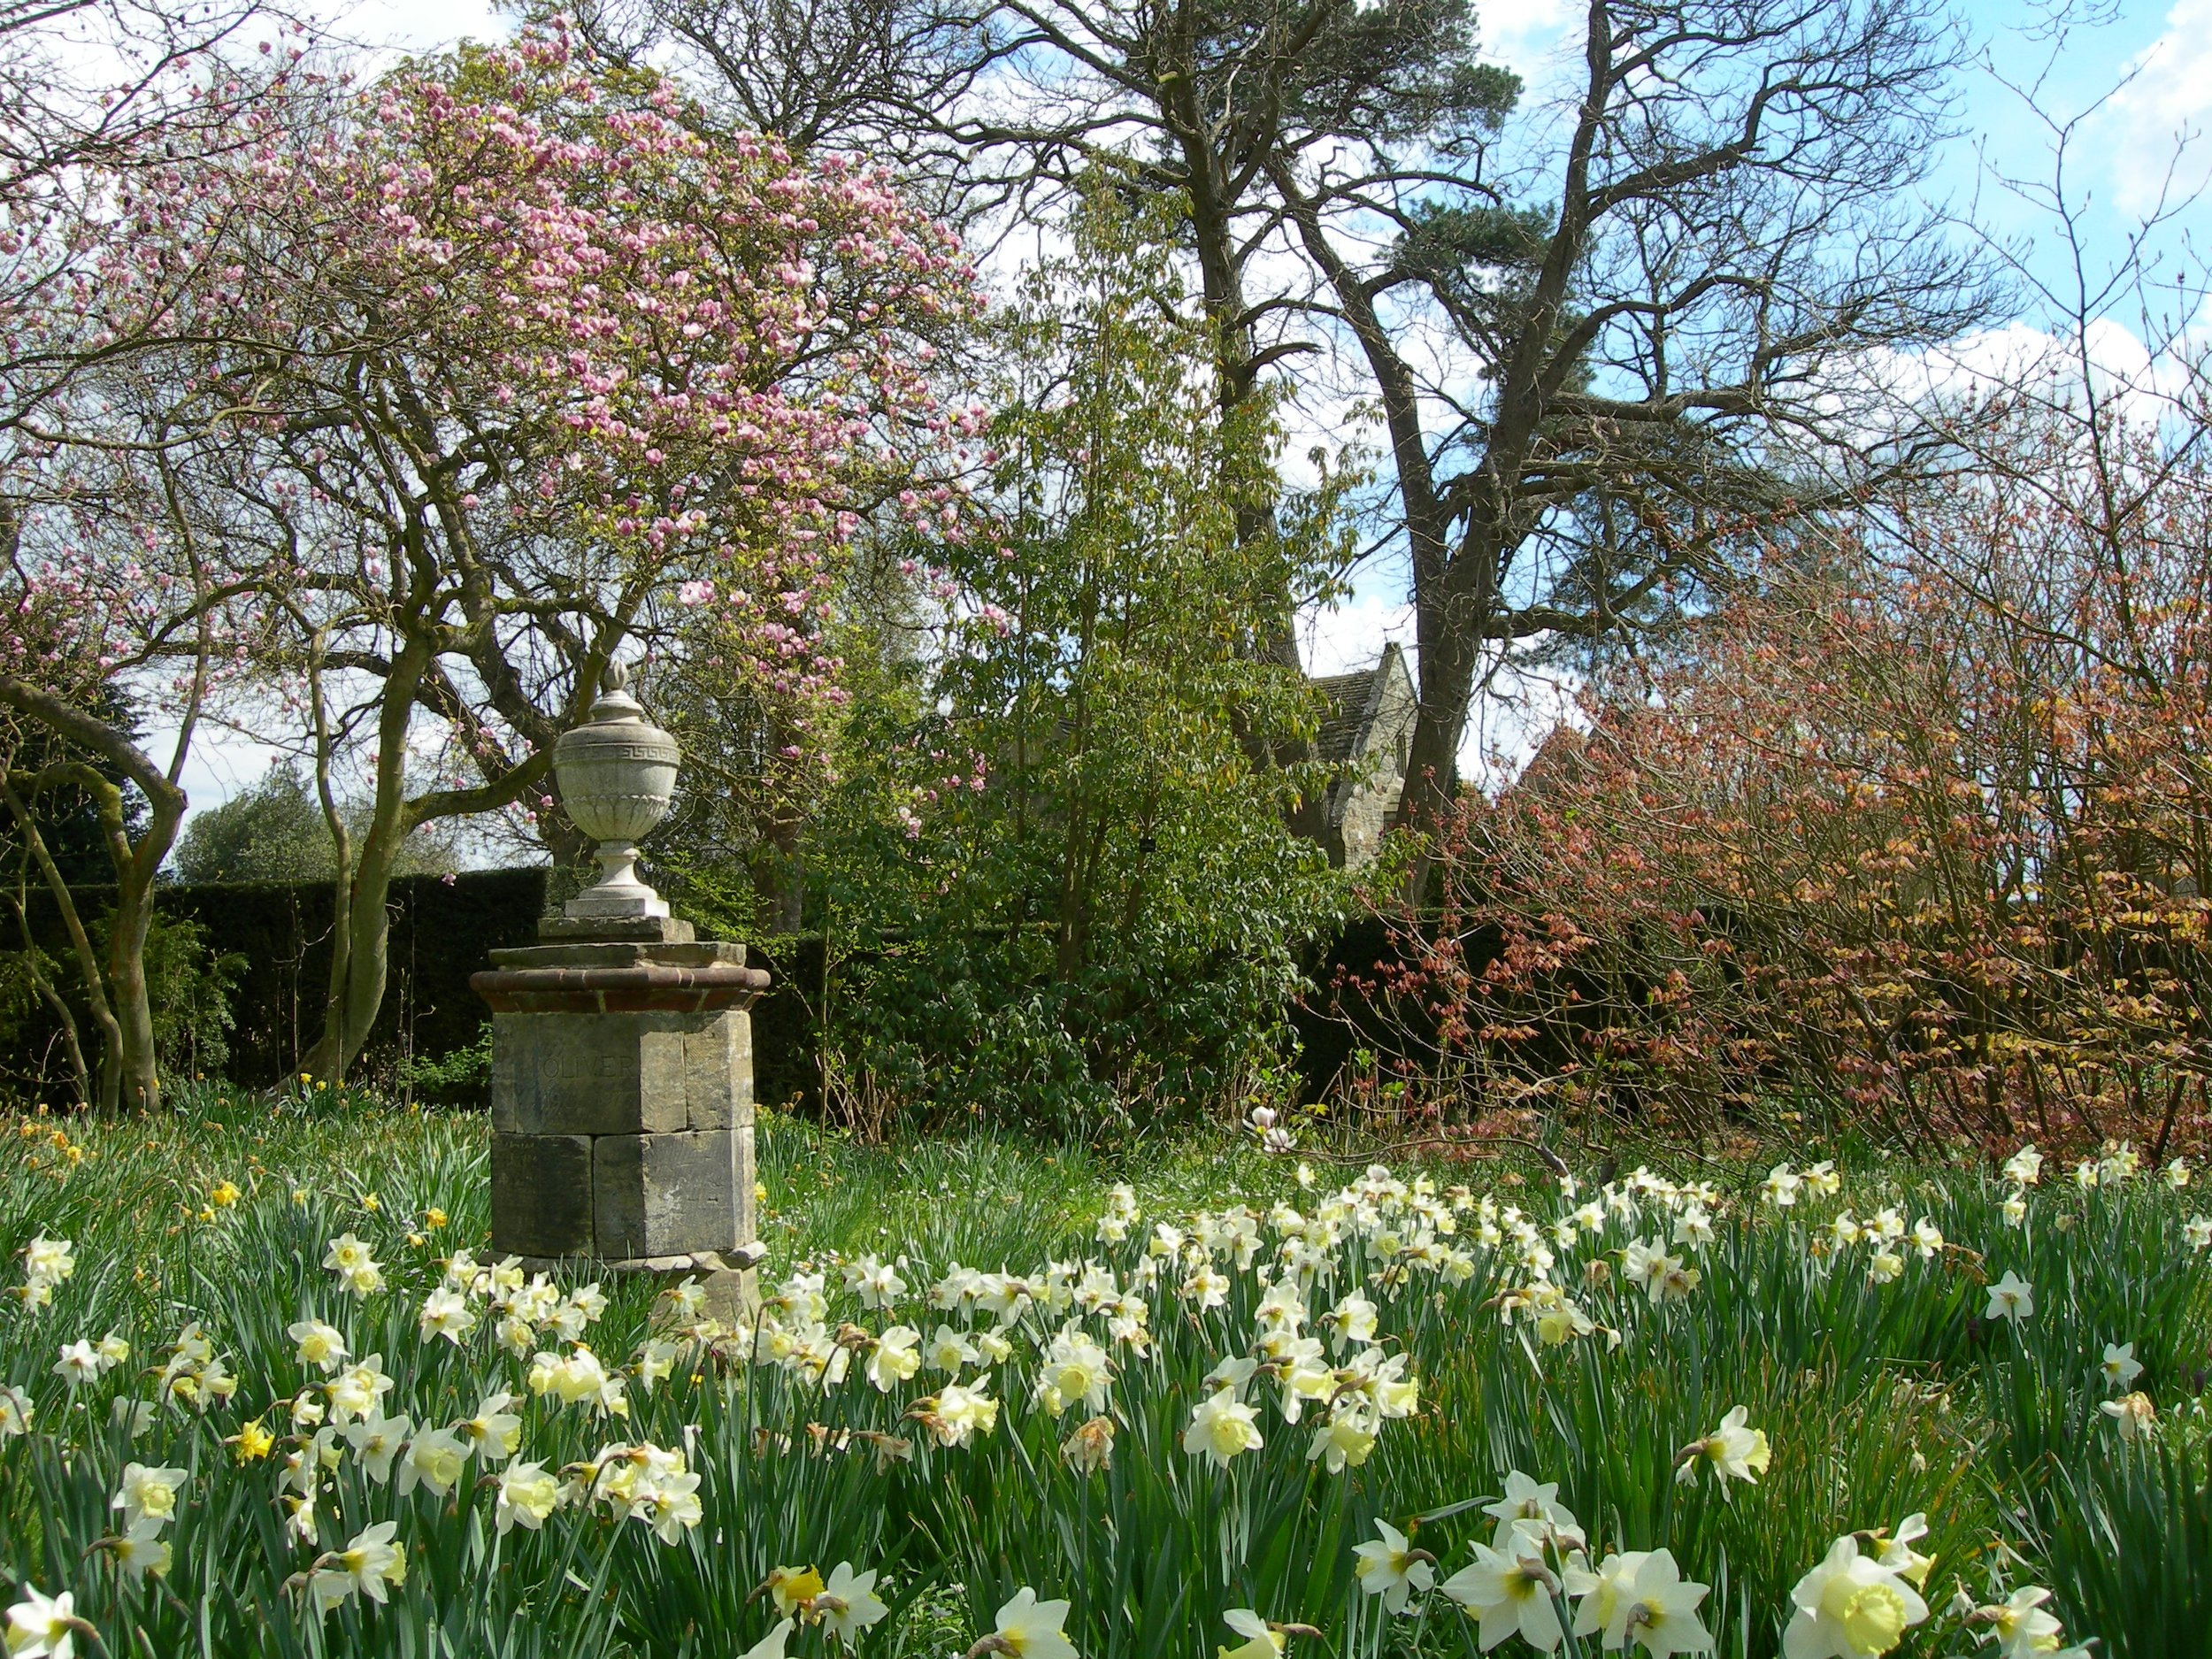 Daffodils at Nymans near Oliver Messel's urn